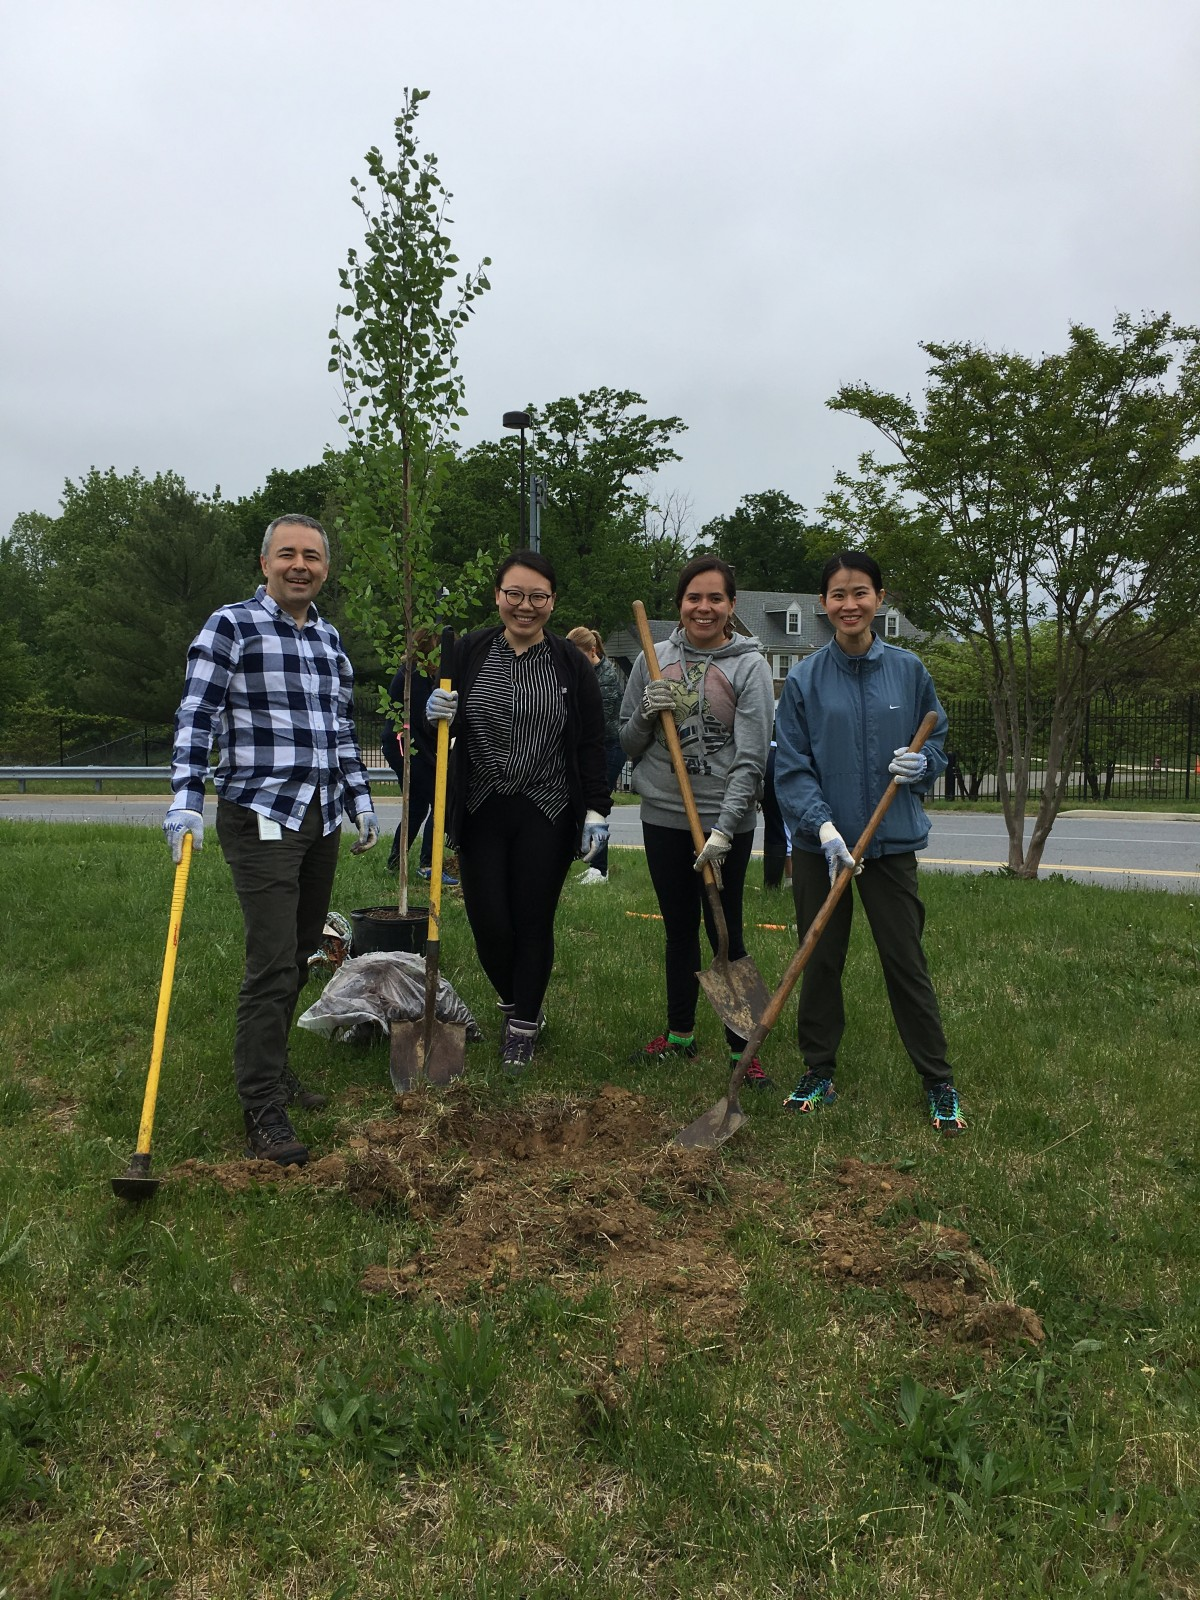 11am-1pm Fairmount Heights Community Planting Day